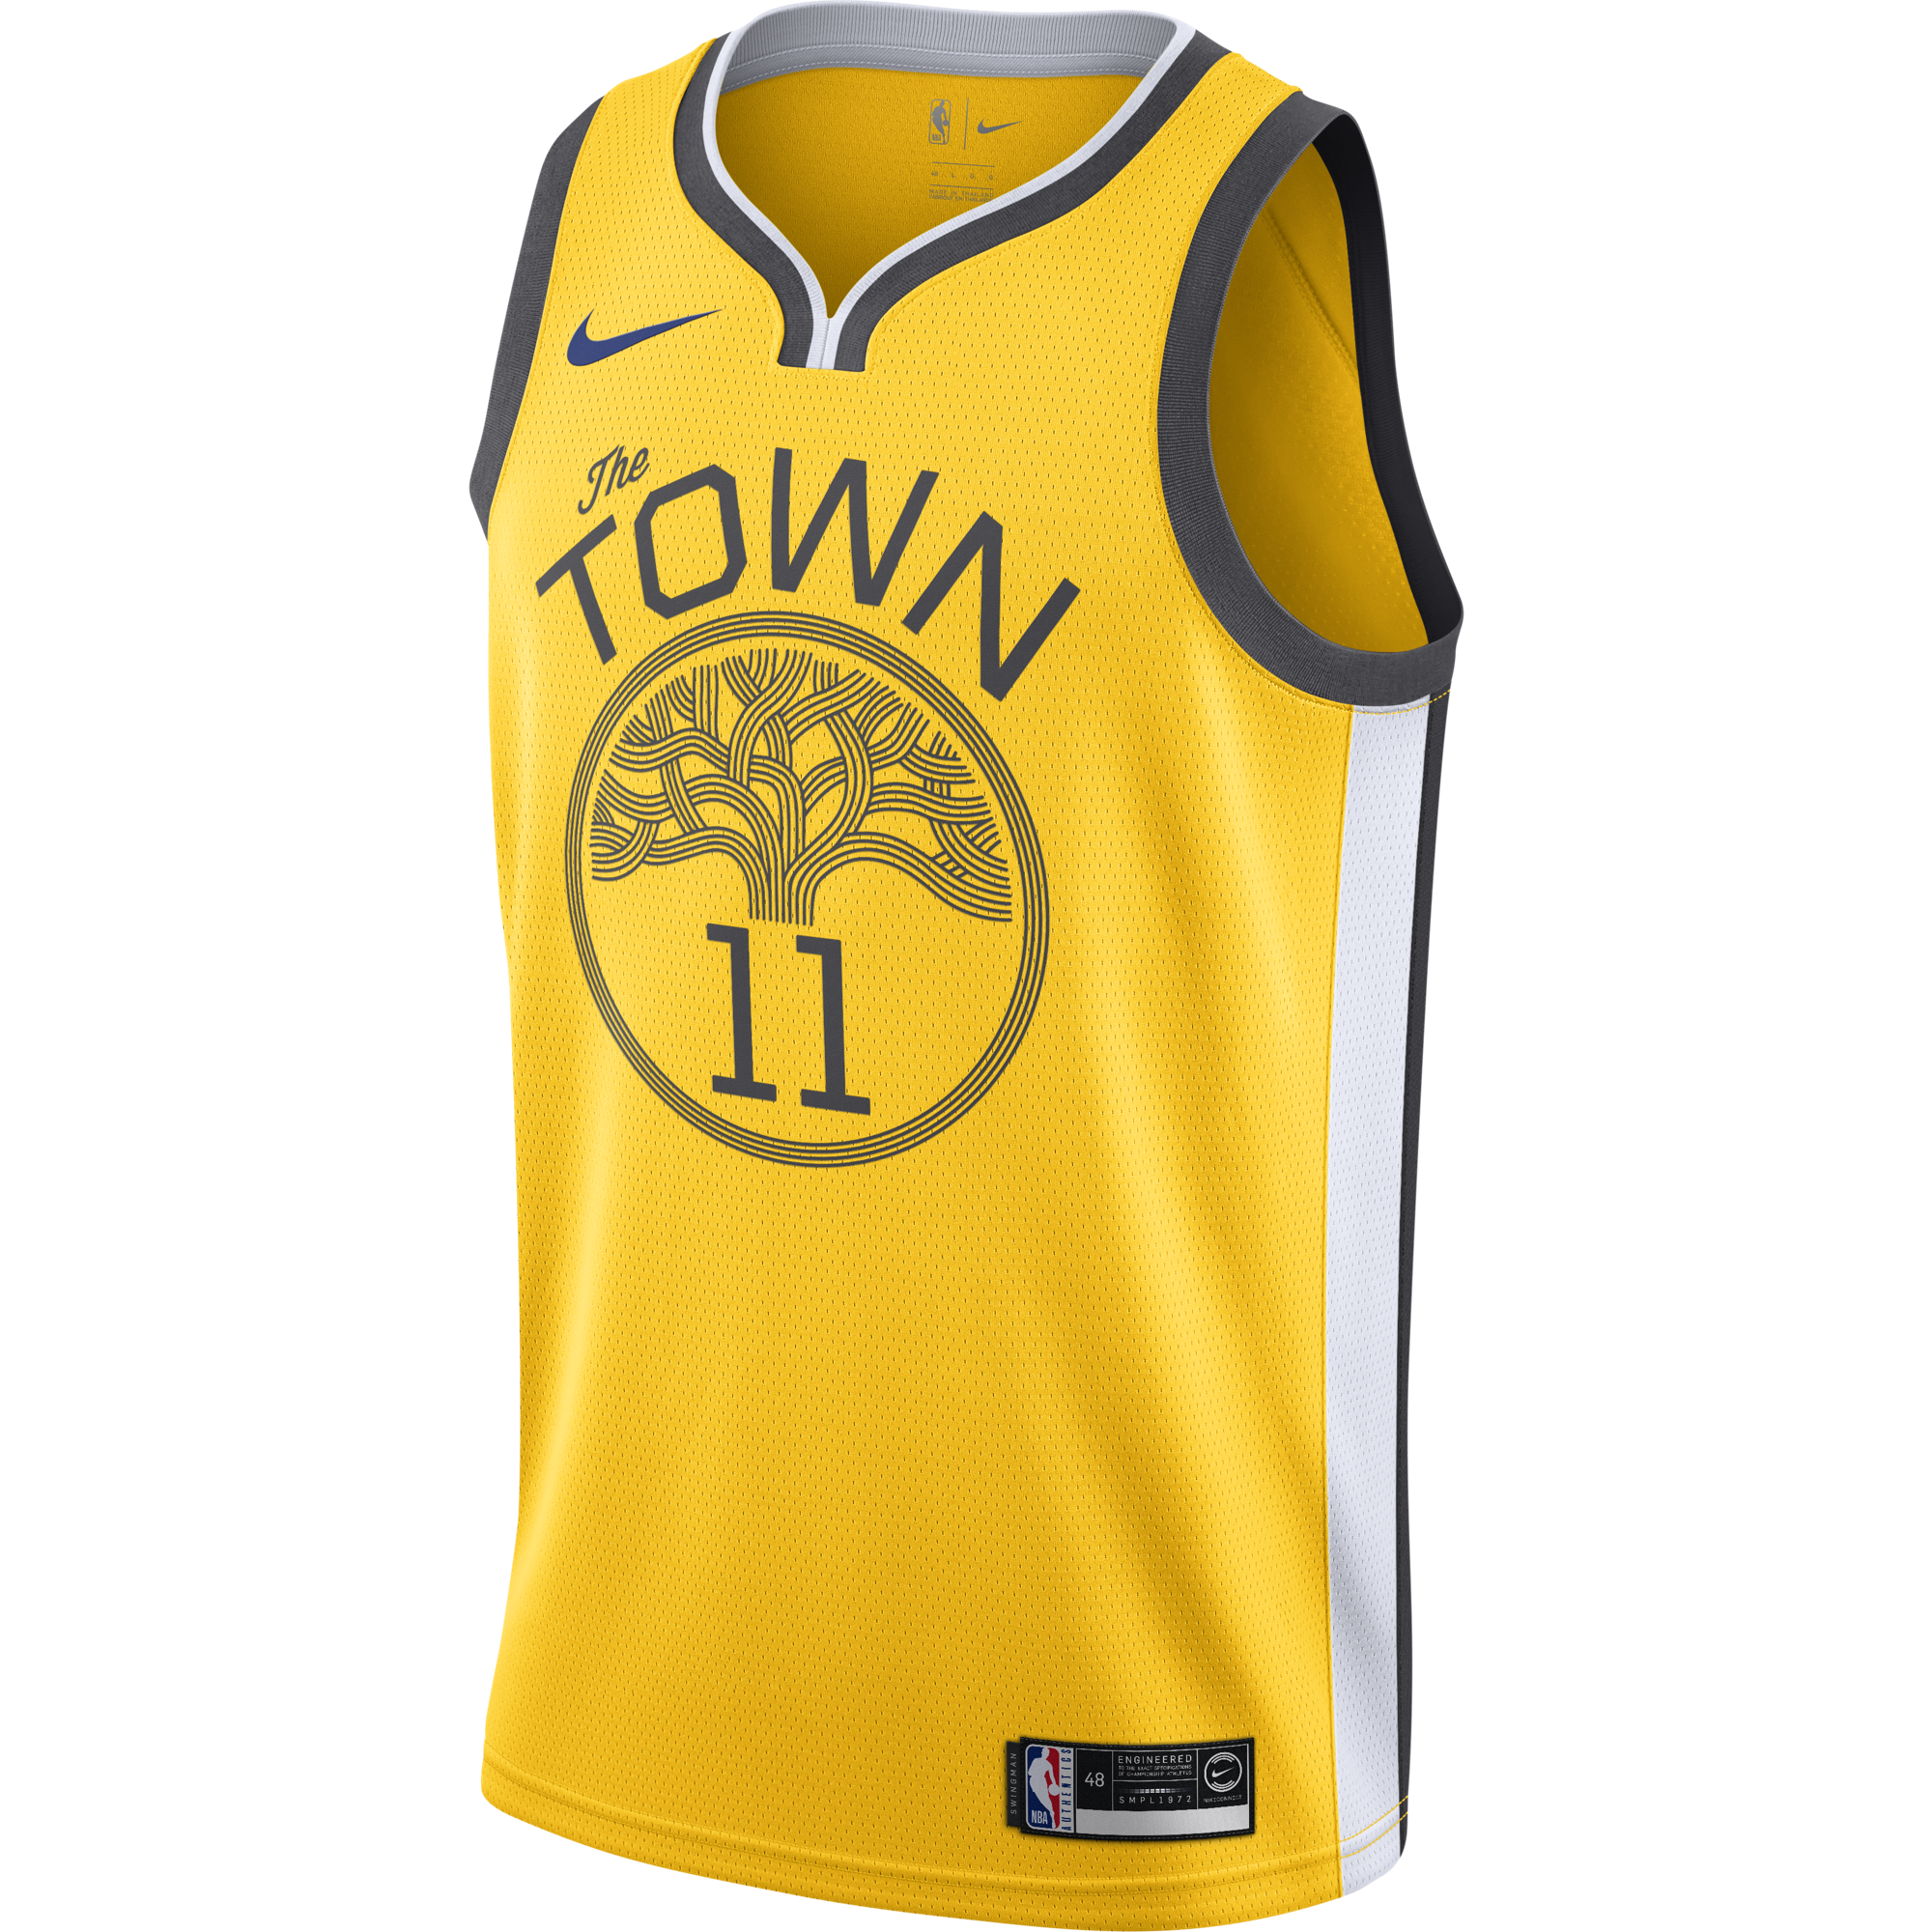 22dd3964a5d NBA Earned Edition 2018: The jerseys and merch you'll want to buy ...